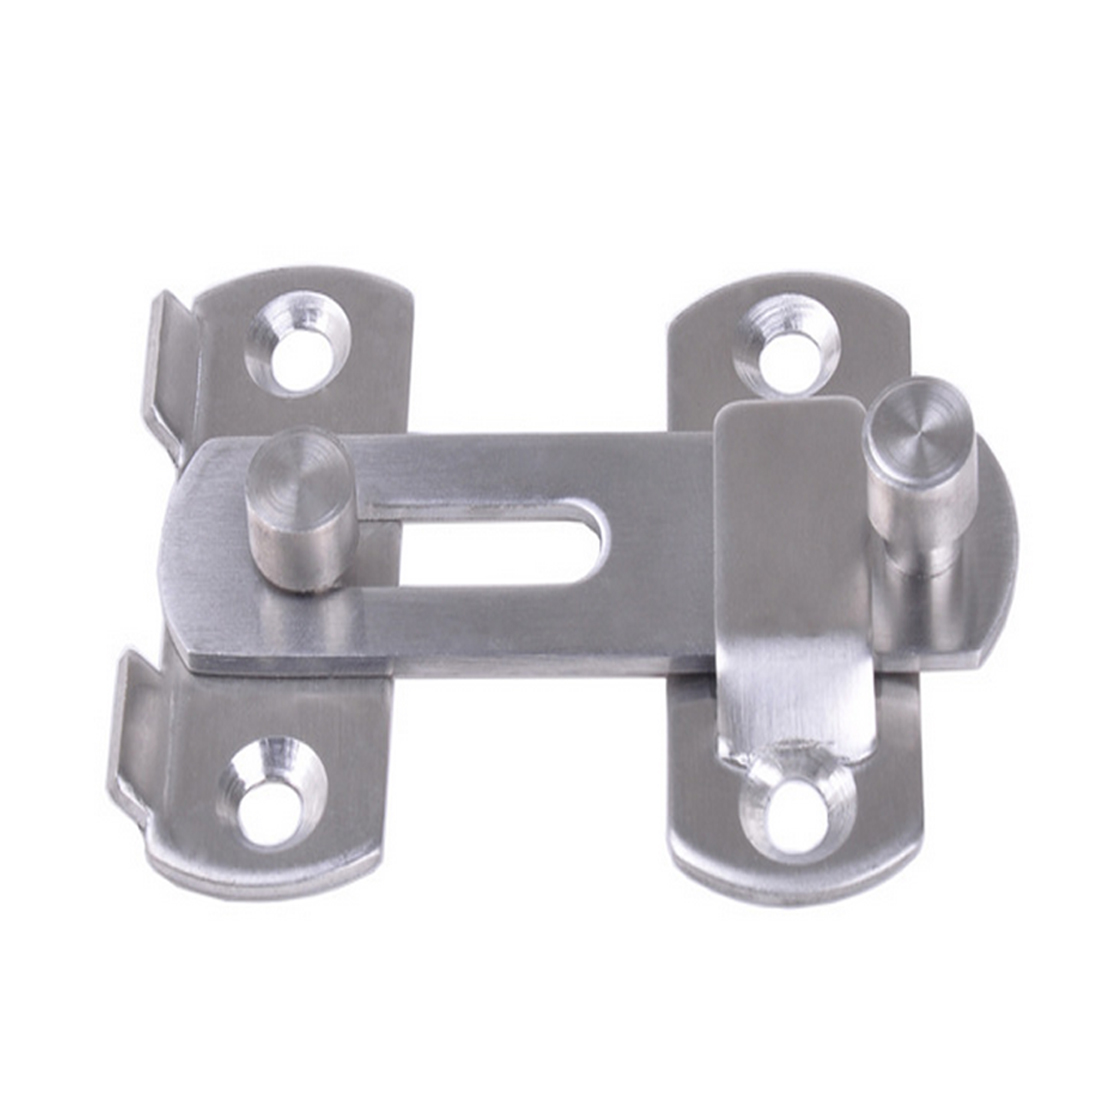 Good Hasp Latch Stainless Steel Hasp Latch Lock Sliding Door lock for Window Cabinet Fitting Room Accessorries Home Hardware